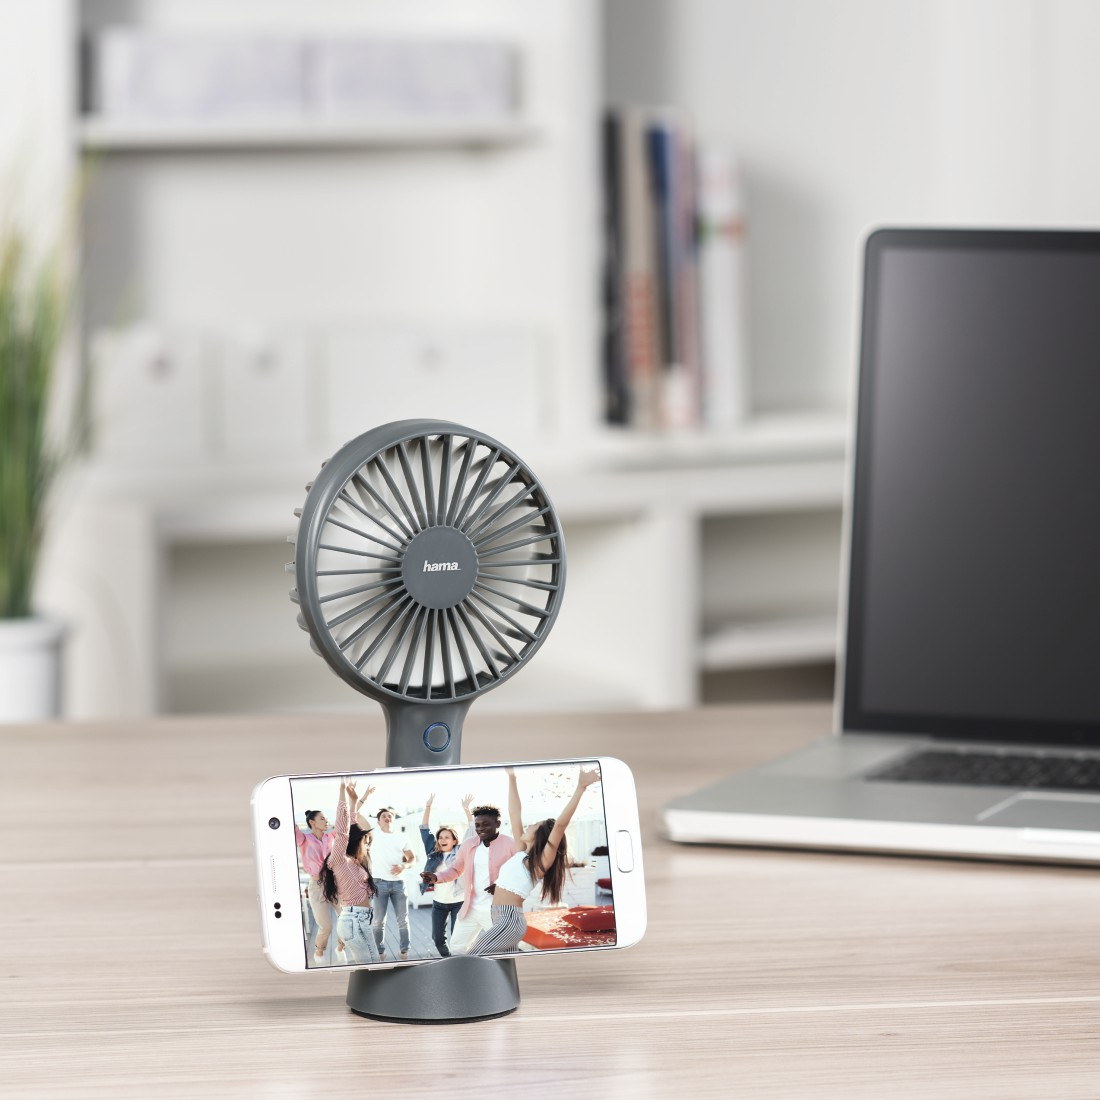 awx2 High-Res Appliance 2 - Hama, Portable Hand-Held Fan, Rechargeable Battery via USB